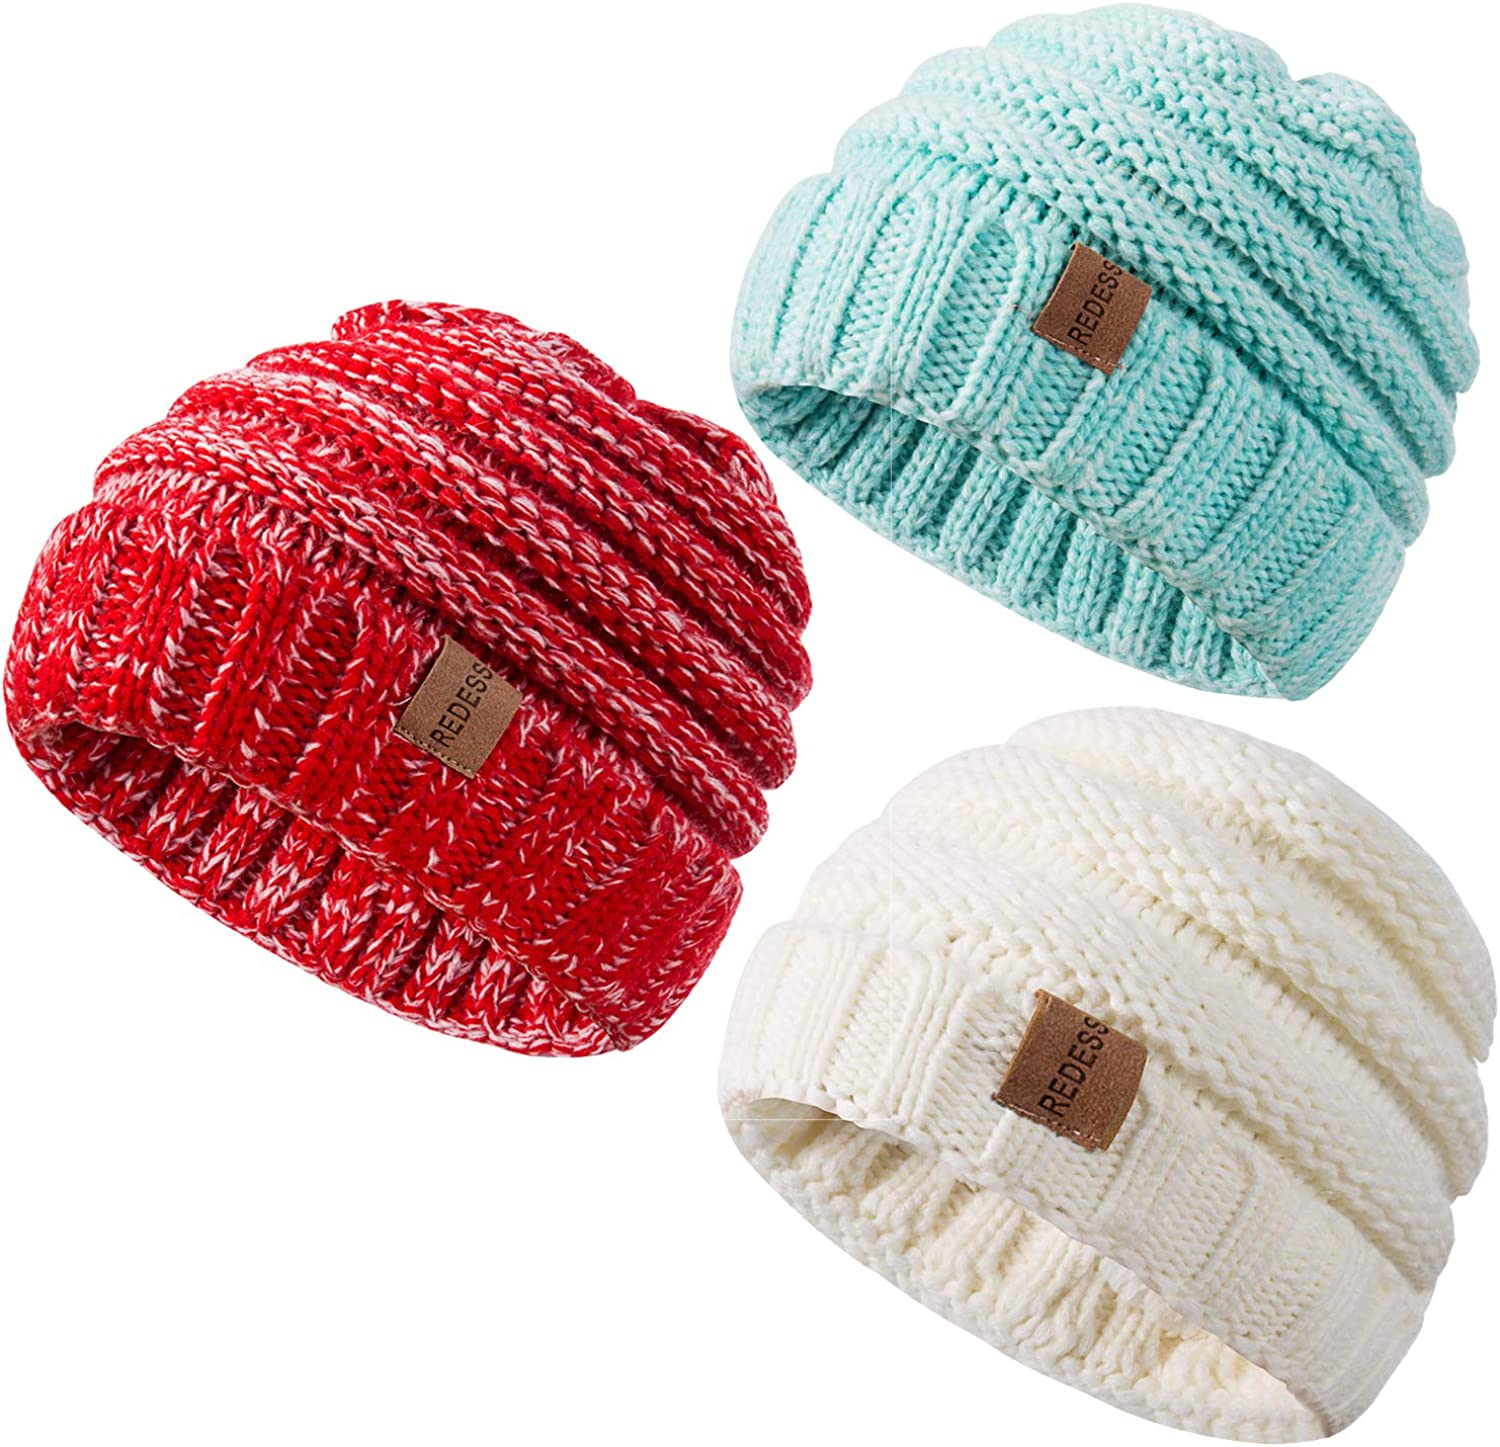 NICE CAPS Boys Toddler Baby Wrap Around Hat and Mitten Winter Snow Headwear Set